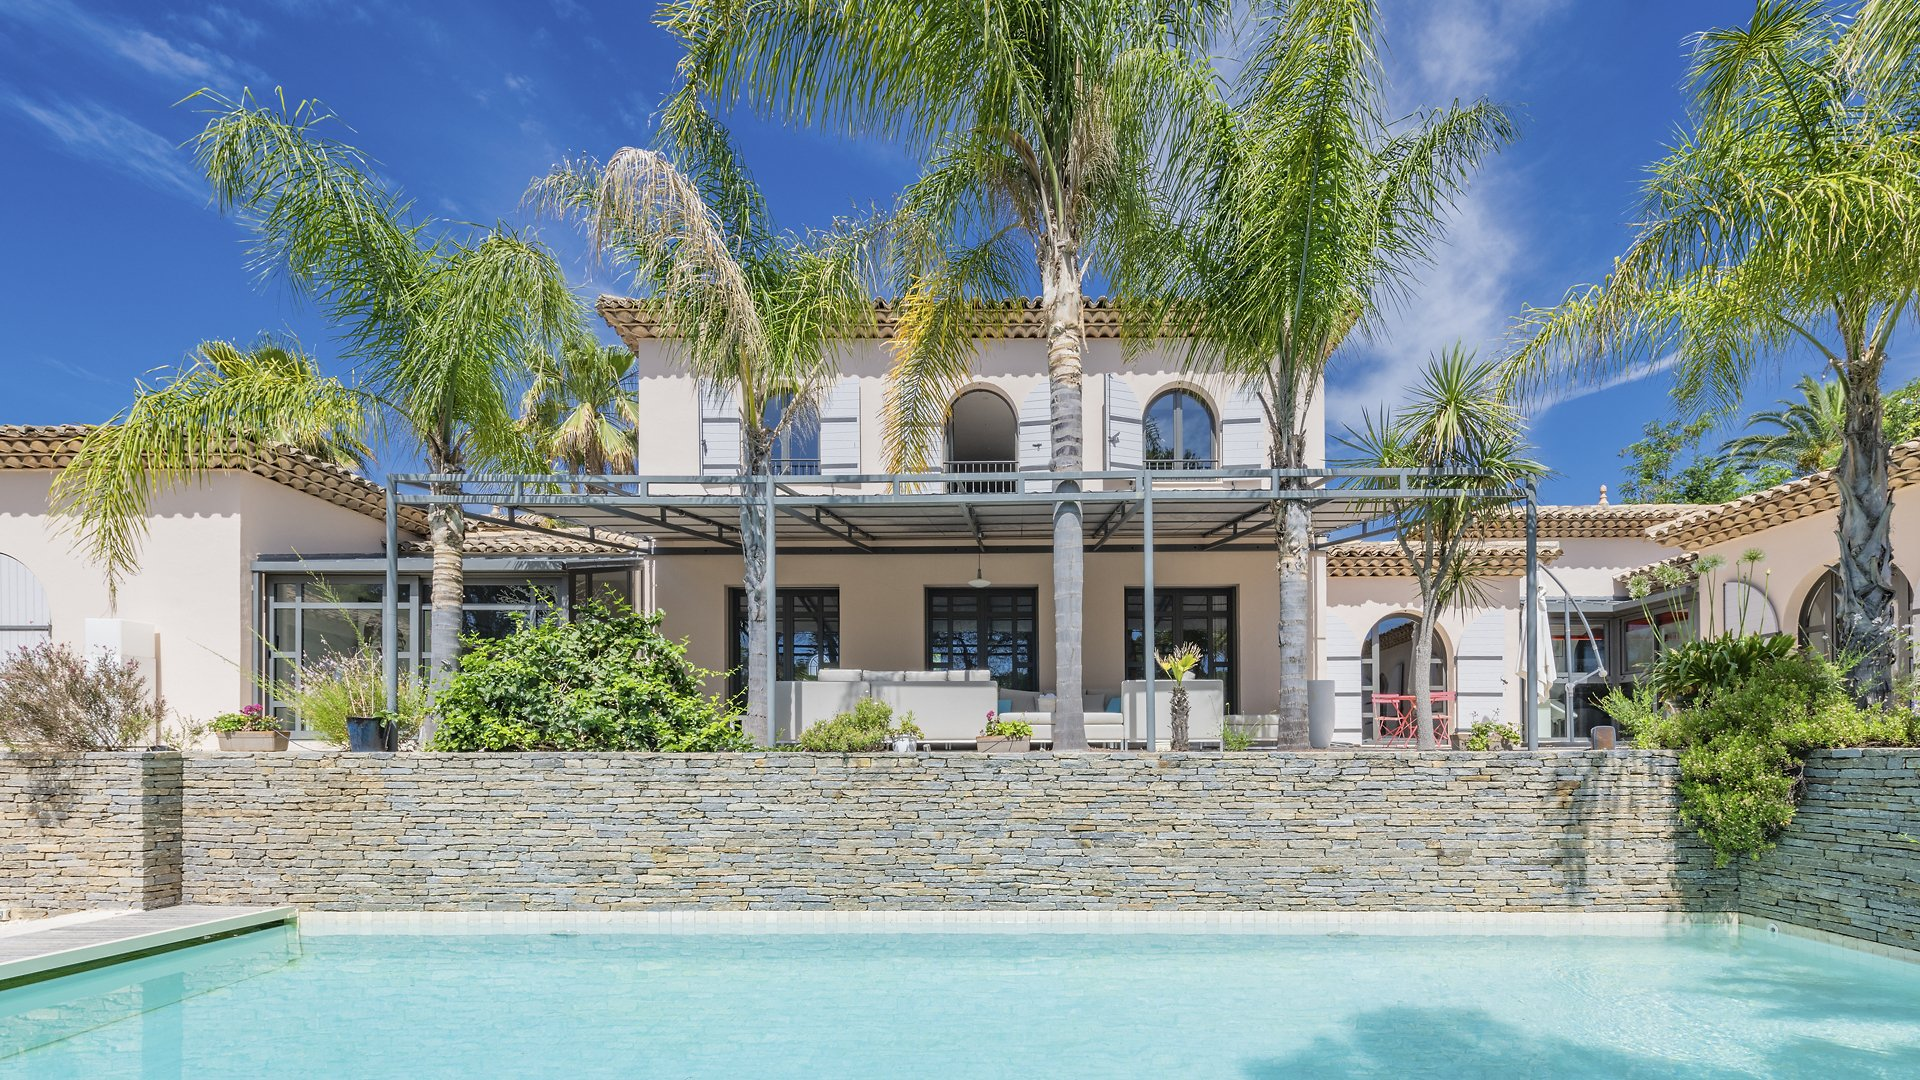 LUXURY VILLA WITH POOL IN A PRIVATE DOMAIN AT SAINT RAPHAEL